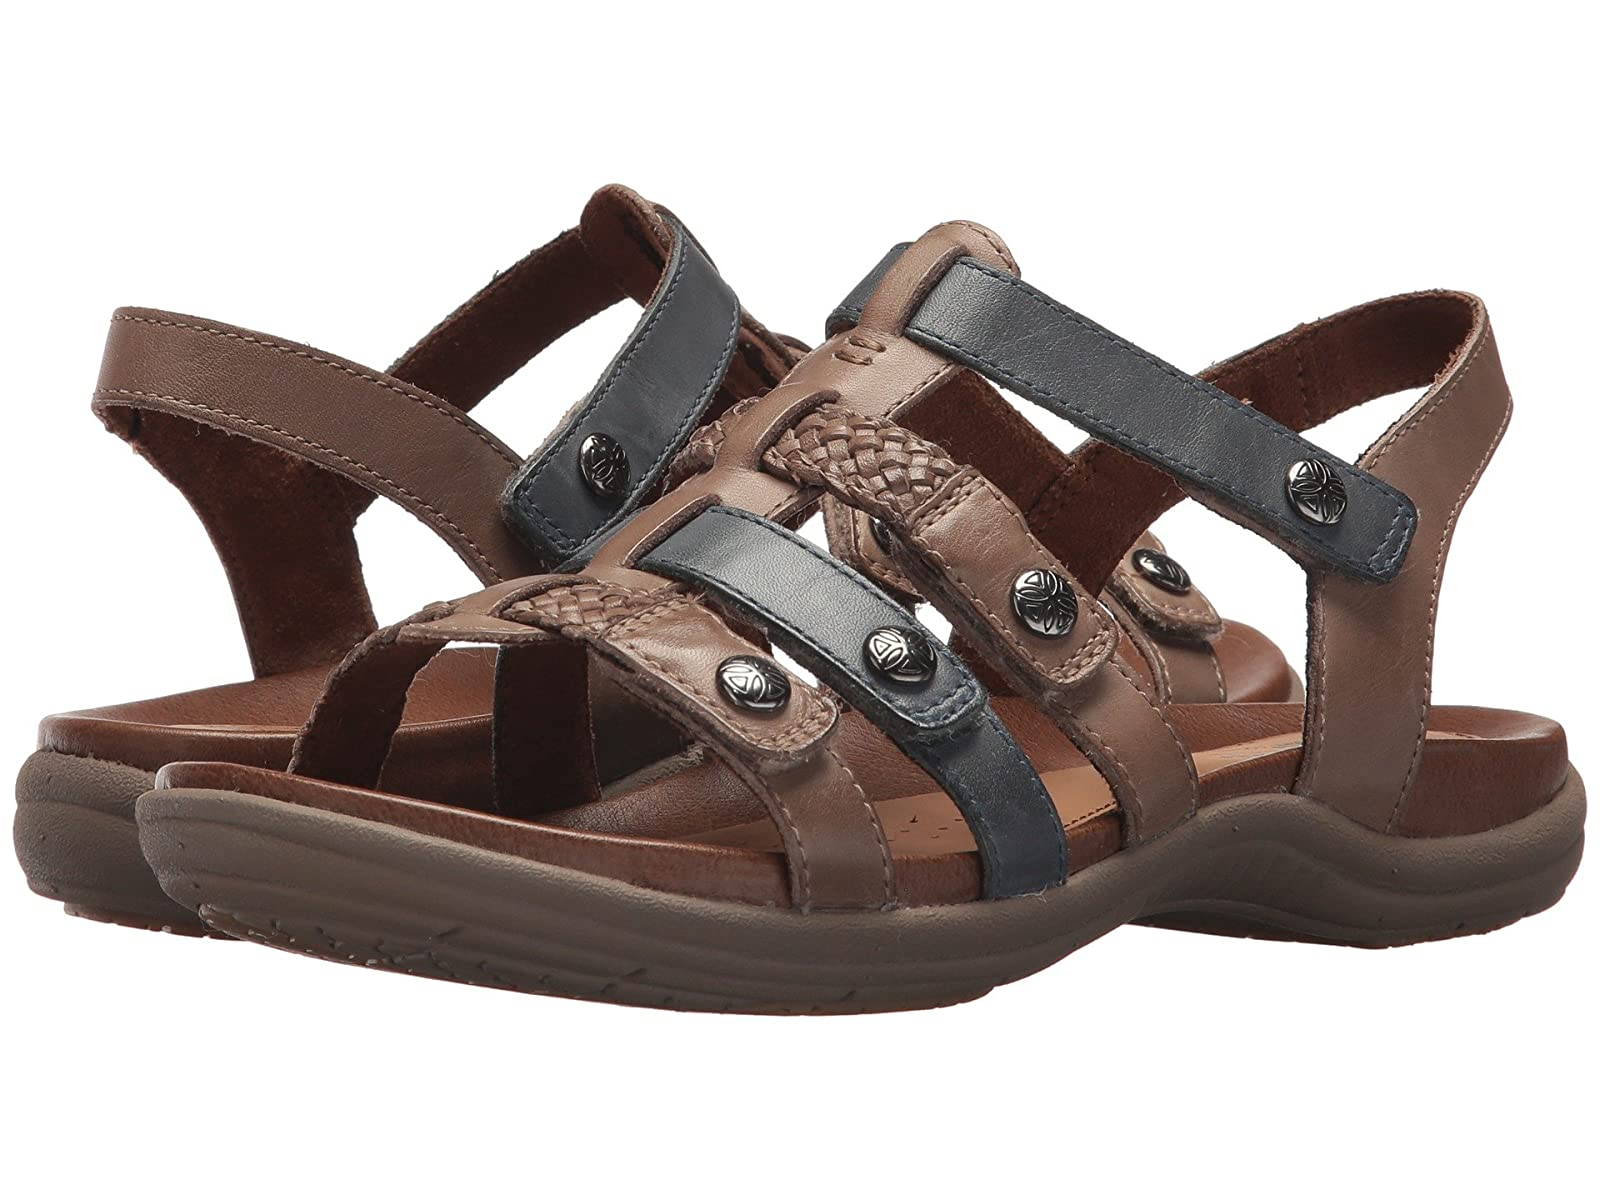 Rockport Cobb Hill Collection Cobb Hill Rubey T StrapAtmospheric grades have affordable shoes